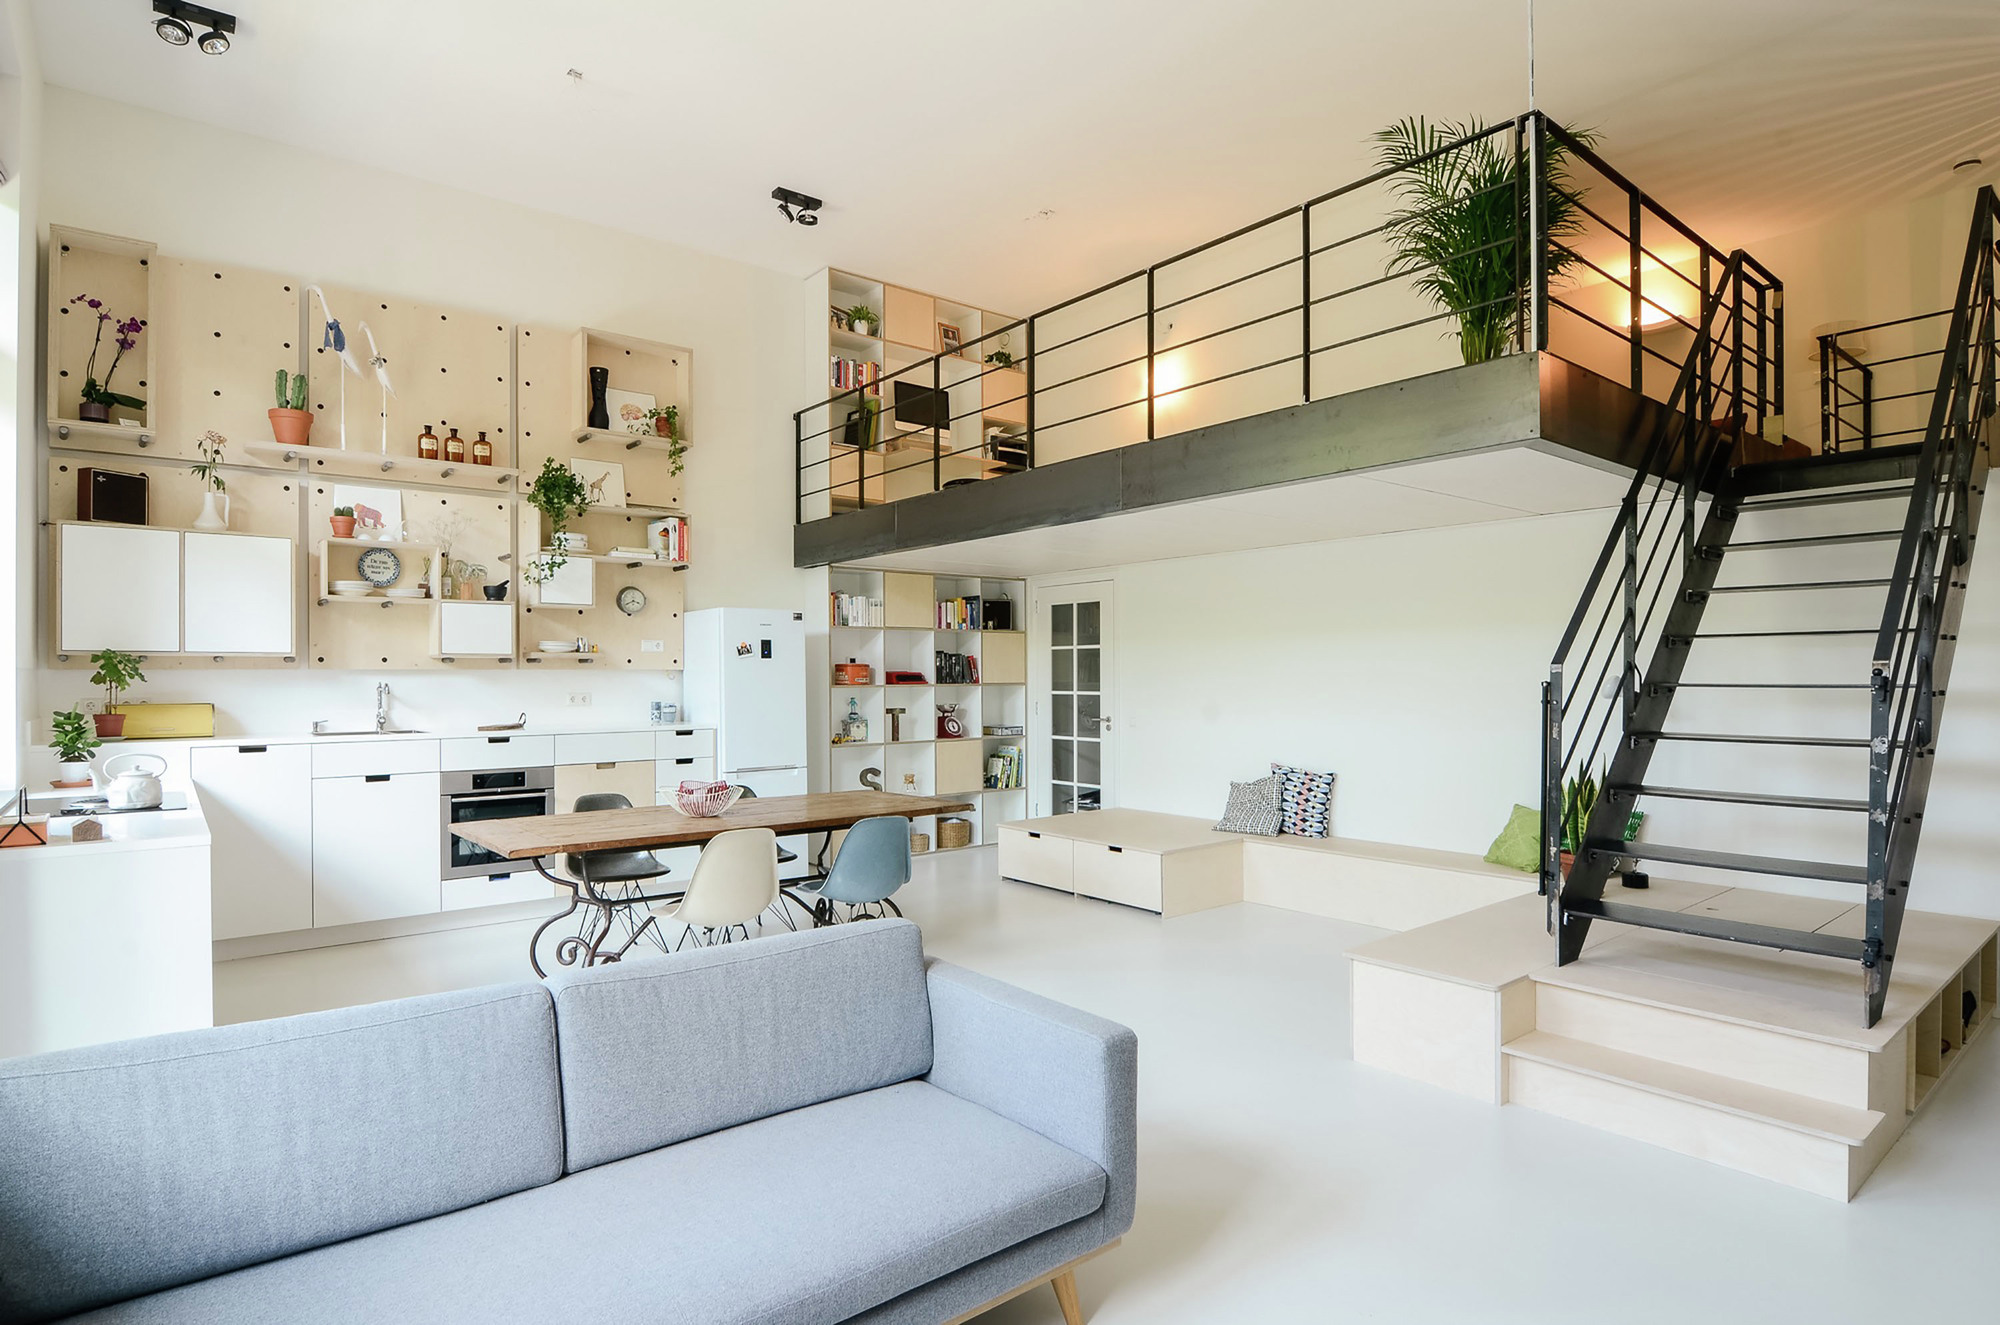 Mini Spa Da Casa apartment conversion / standard studio + casa architecten